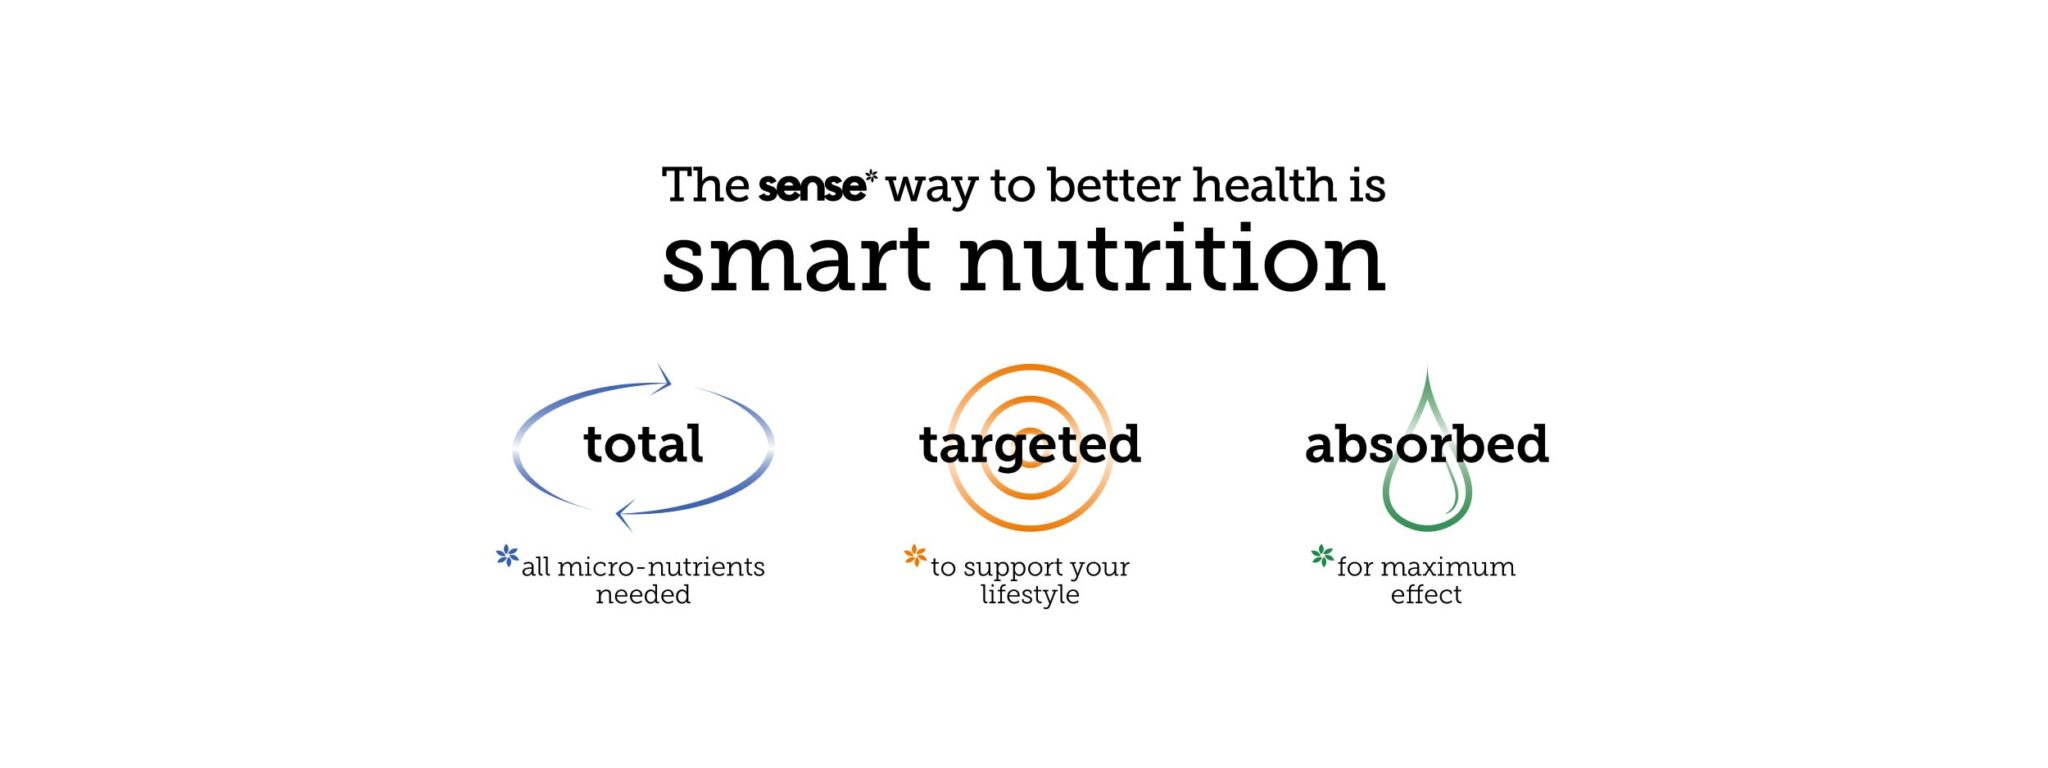 The way to better health is smart nutrition via total targeted absorbed nutrition